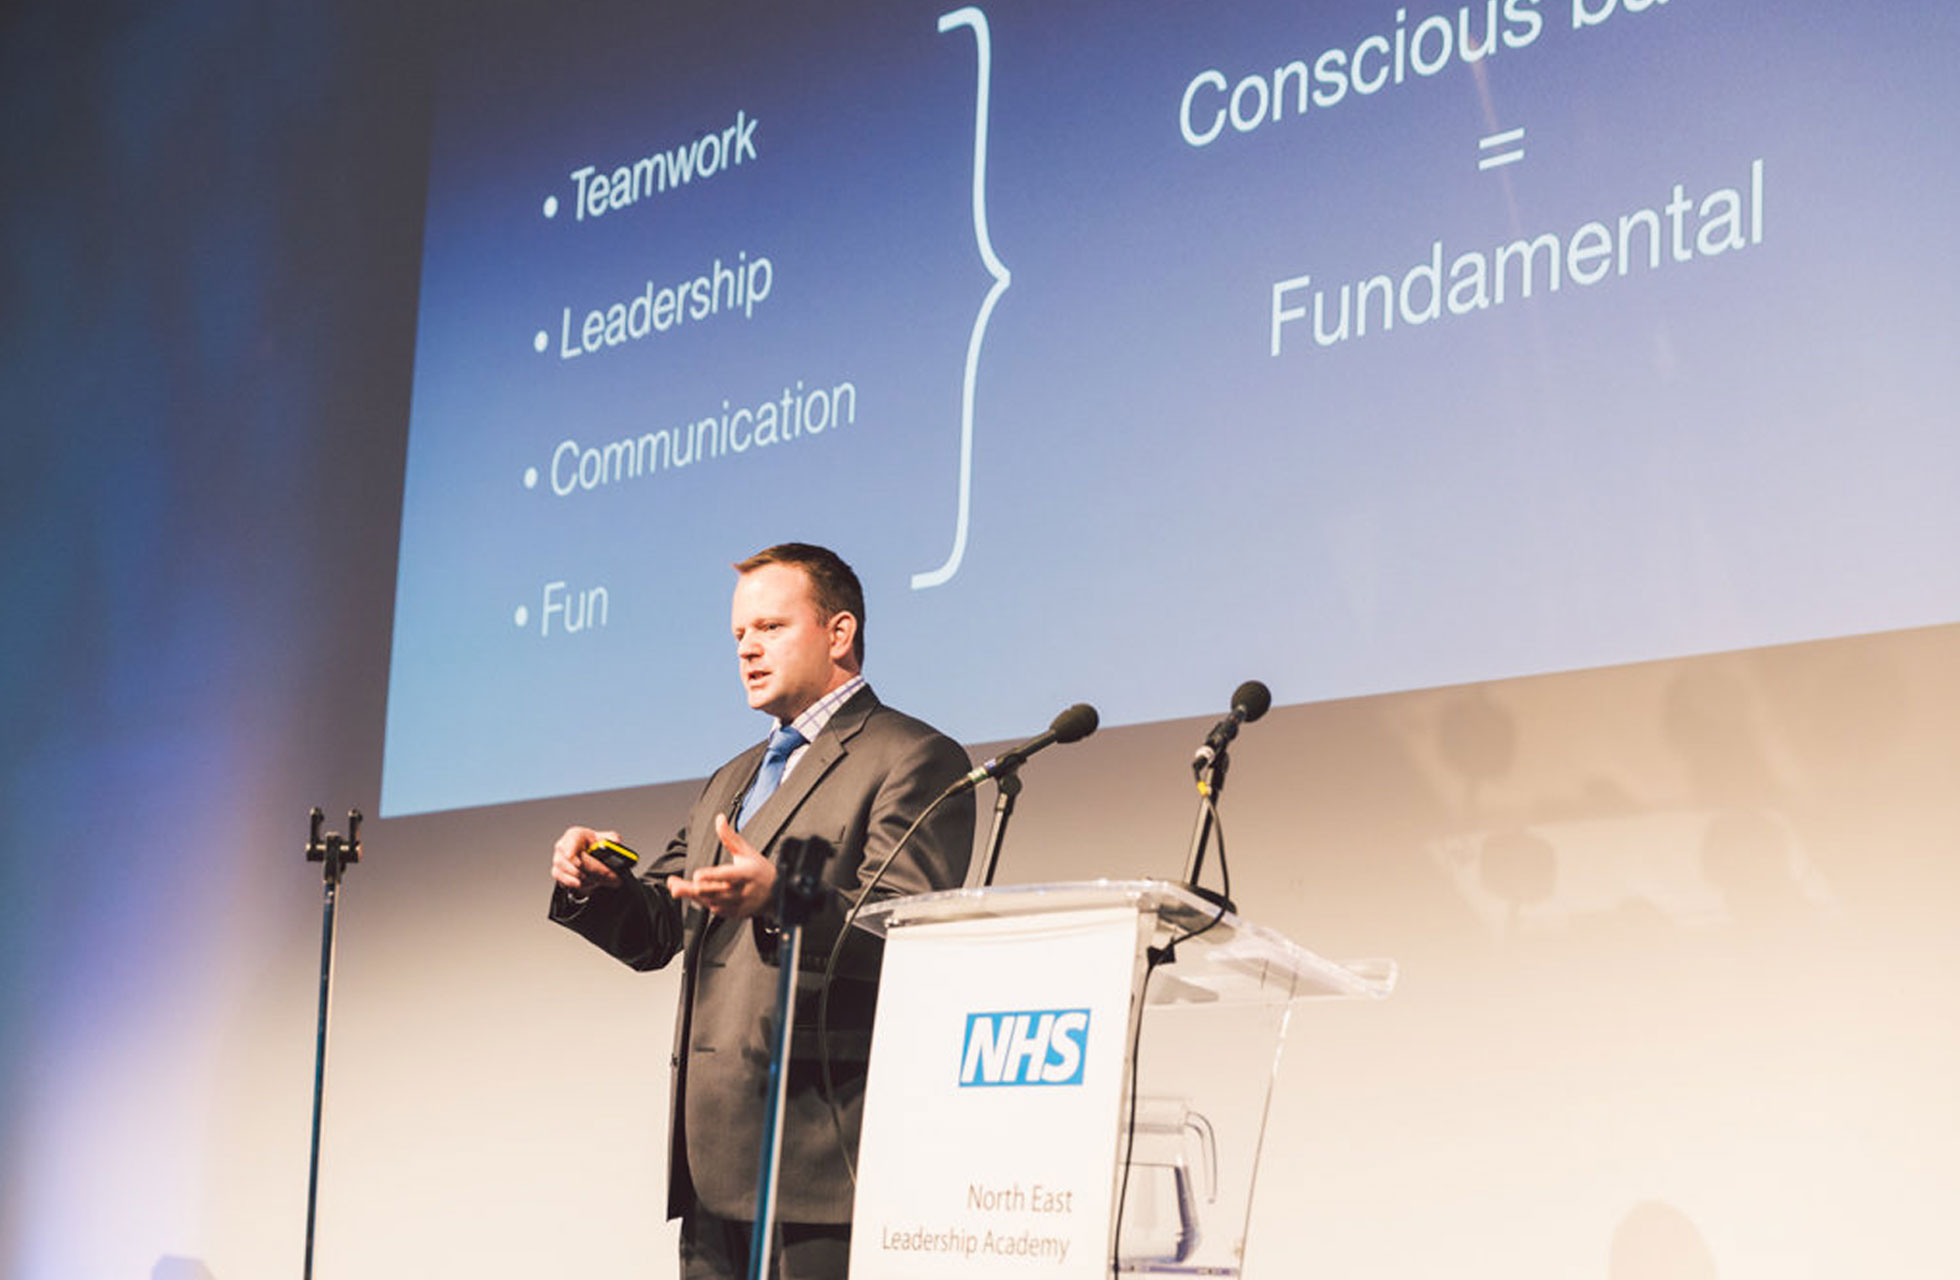 adam-tuffnell-speaking-at-nhs-conference